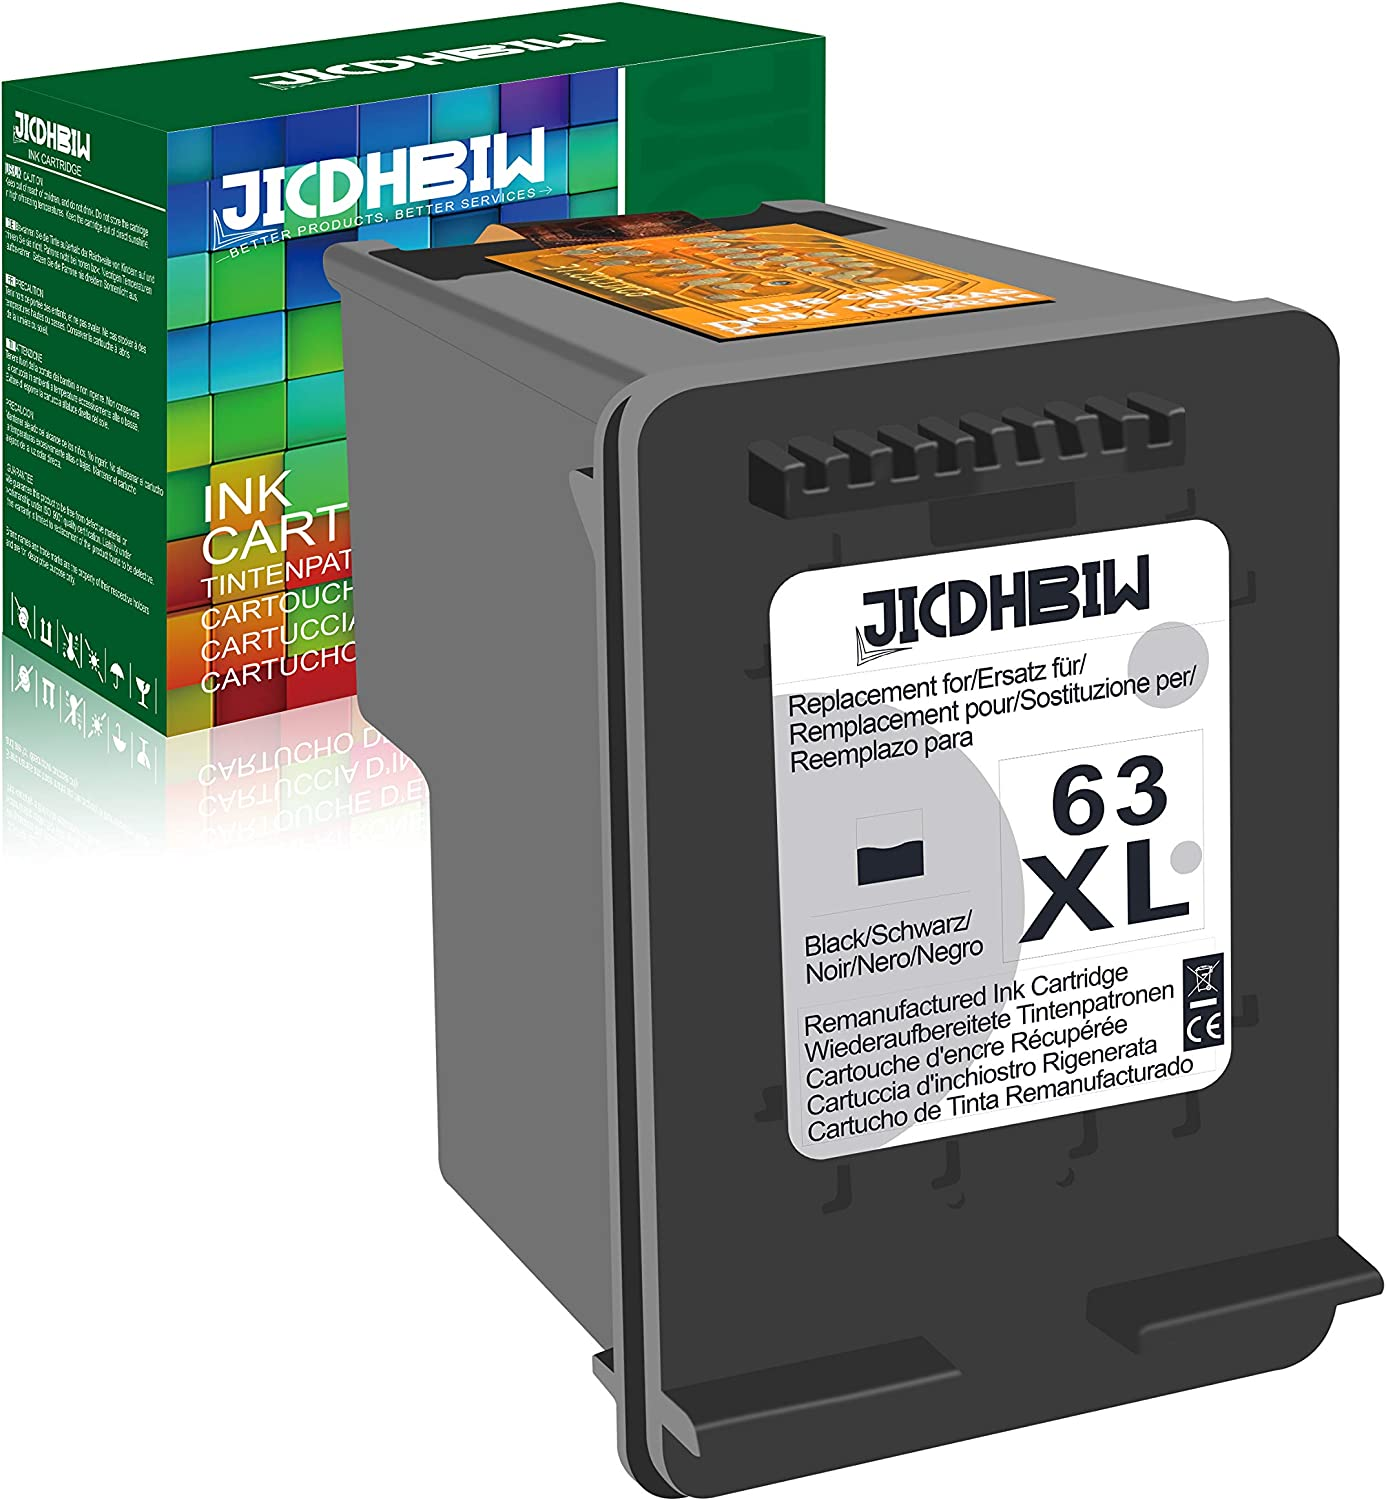 JICDHBIW Remanufactured Ink Cartridge Replacement for HP 63XL 63 XL Black, High Yield 750 Page, Upgraded Chip Fit with Envy 4520 OfficeJet 3830 5252 4650 5258 4655 DeskJet 3636 1111 3630 1112, 1 Pack